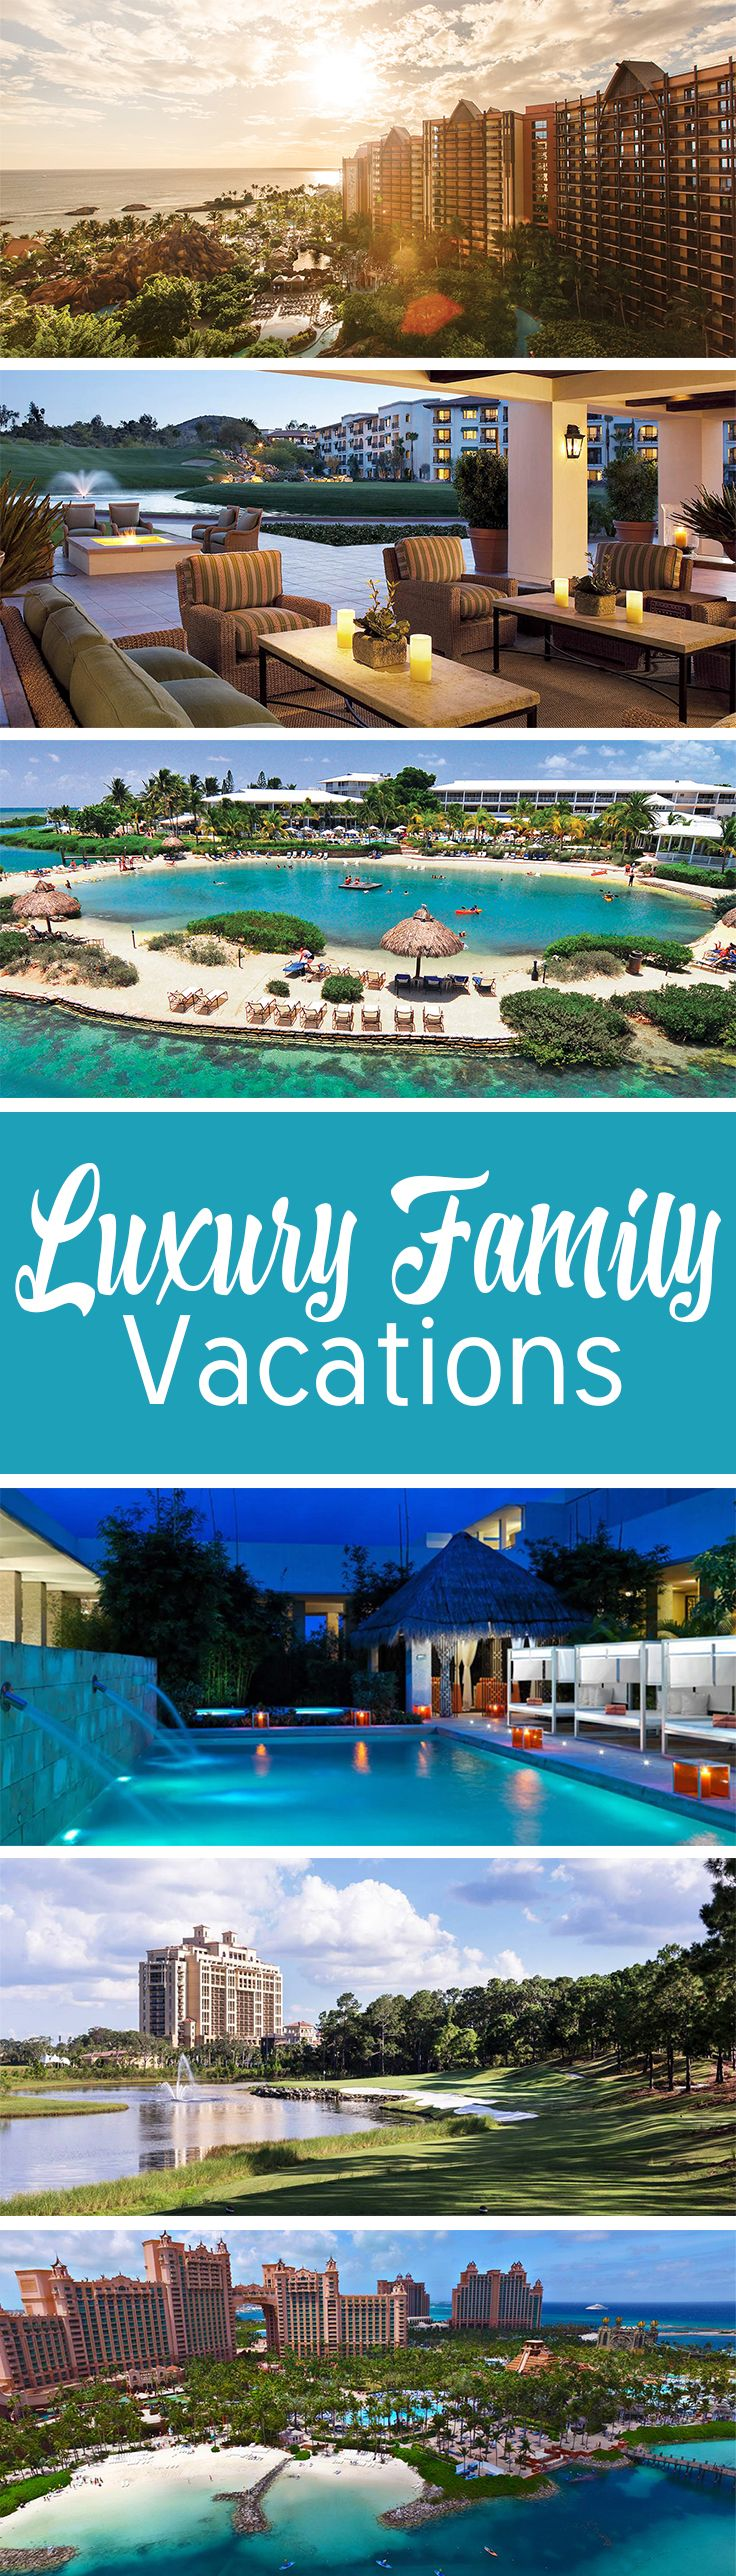 Want to give your family a special treat? These resorts will pamper everyone, with lots of fun activities.